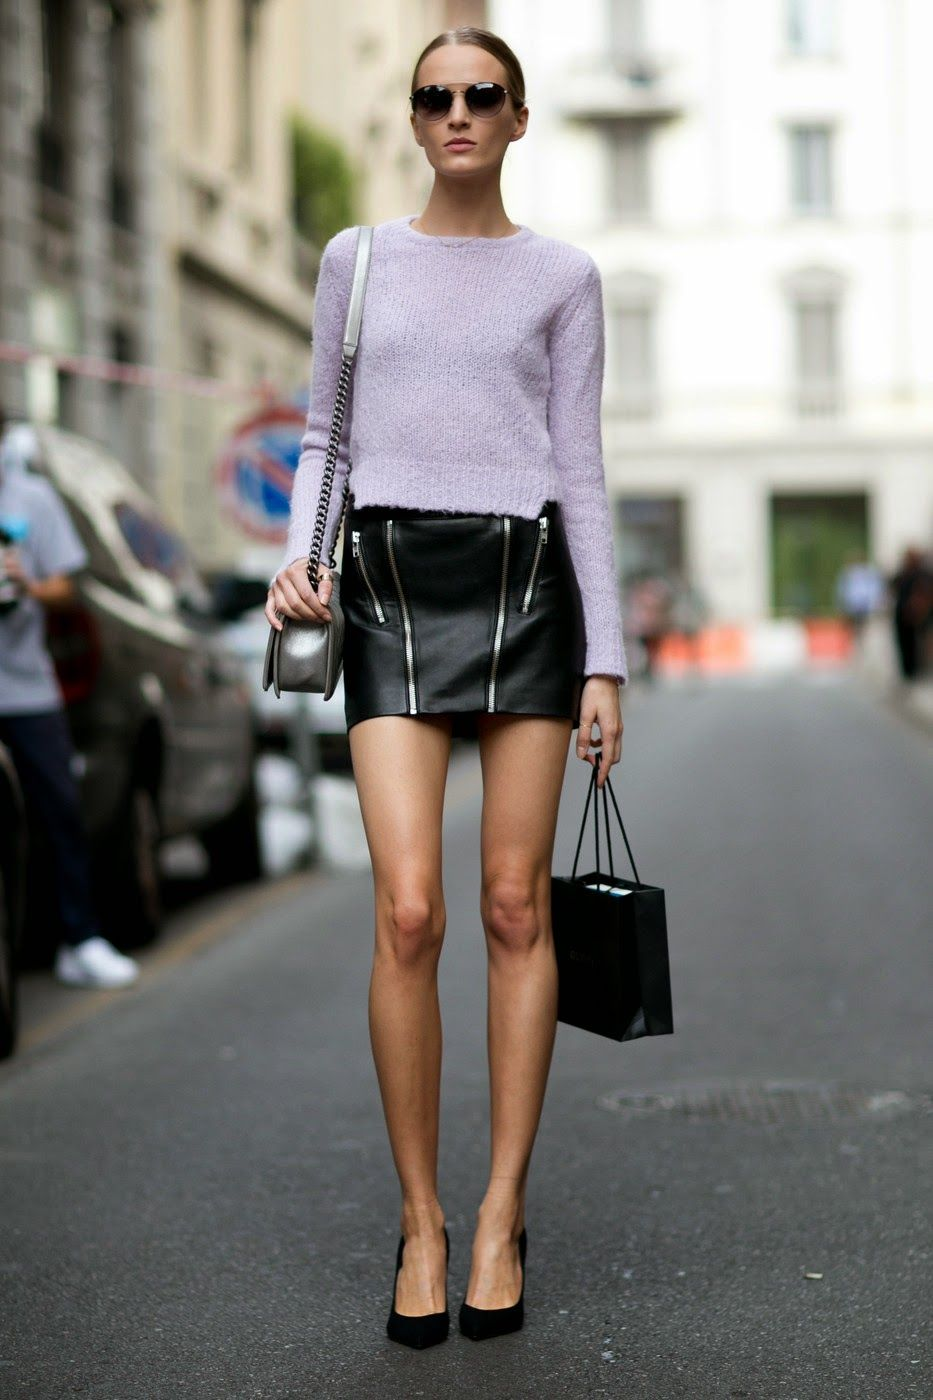 The Front Row View: Model Street Style: Daria Strokous' Leather ...